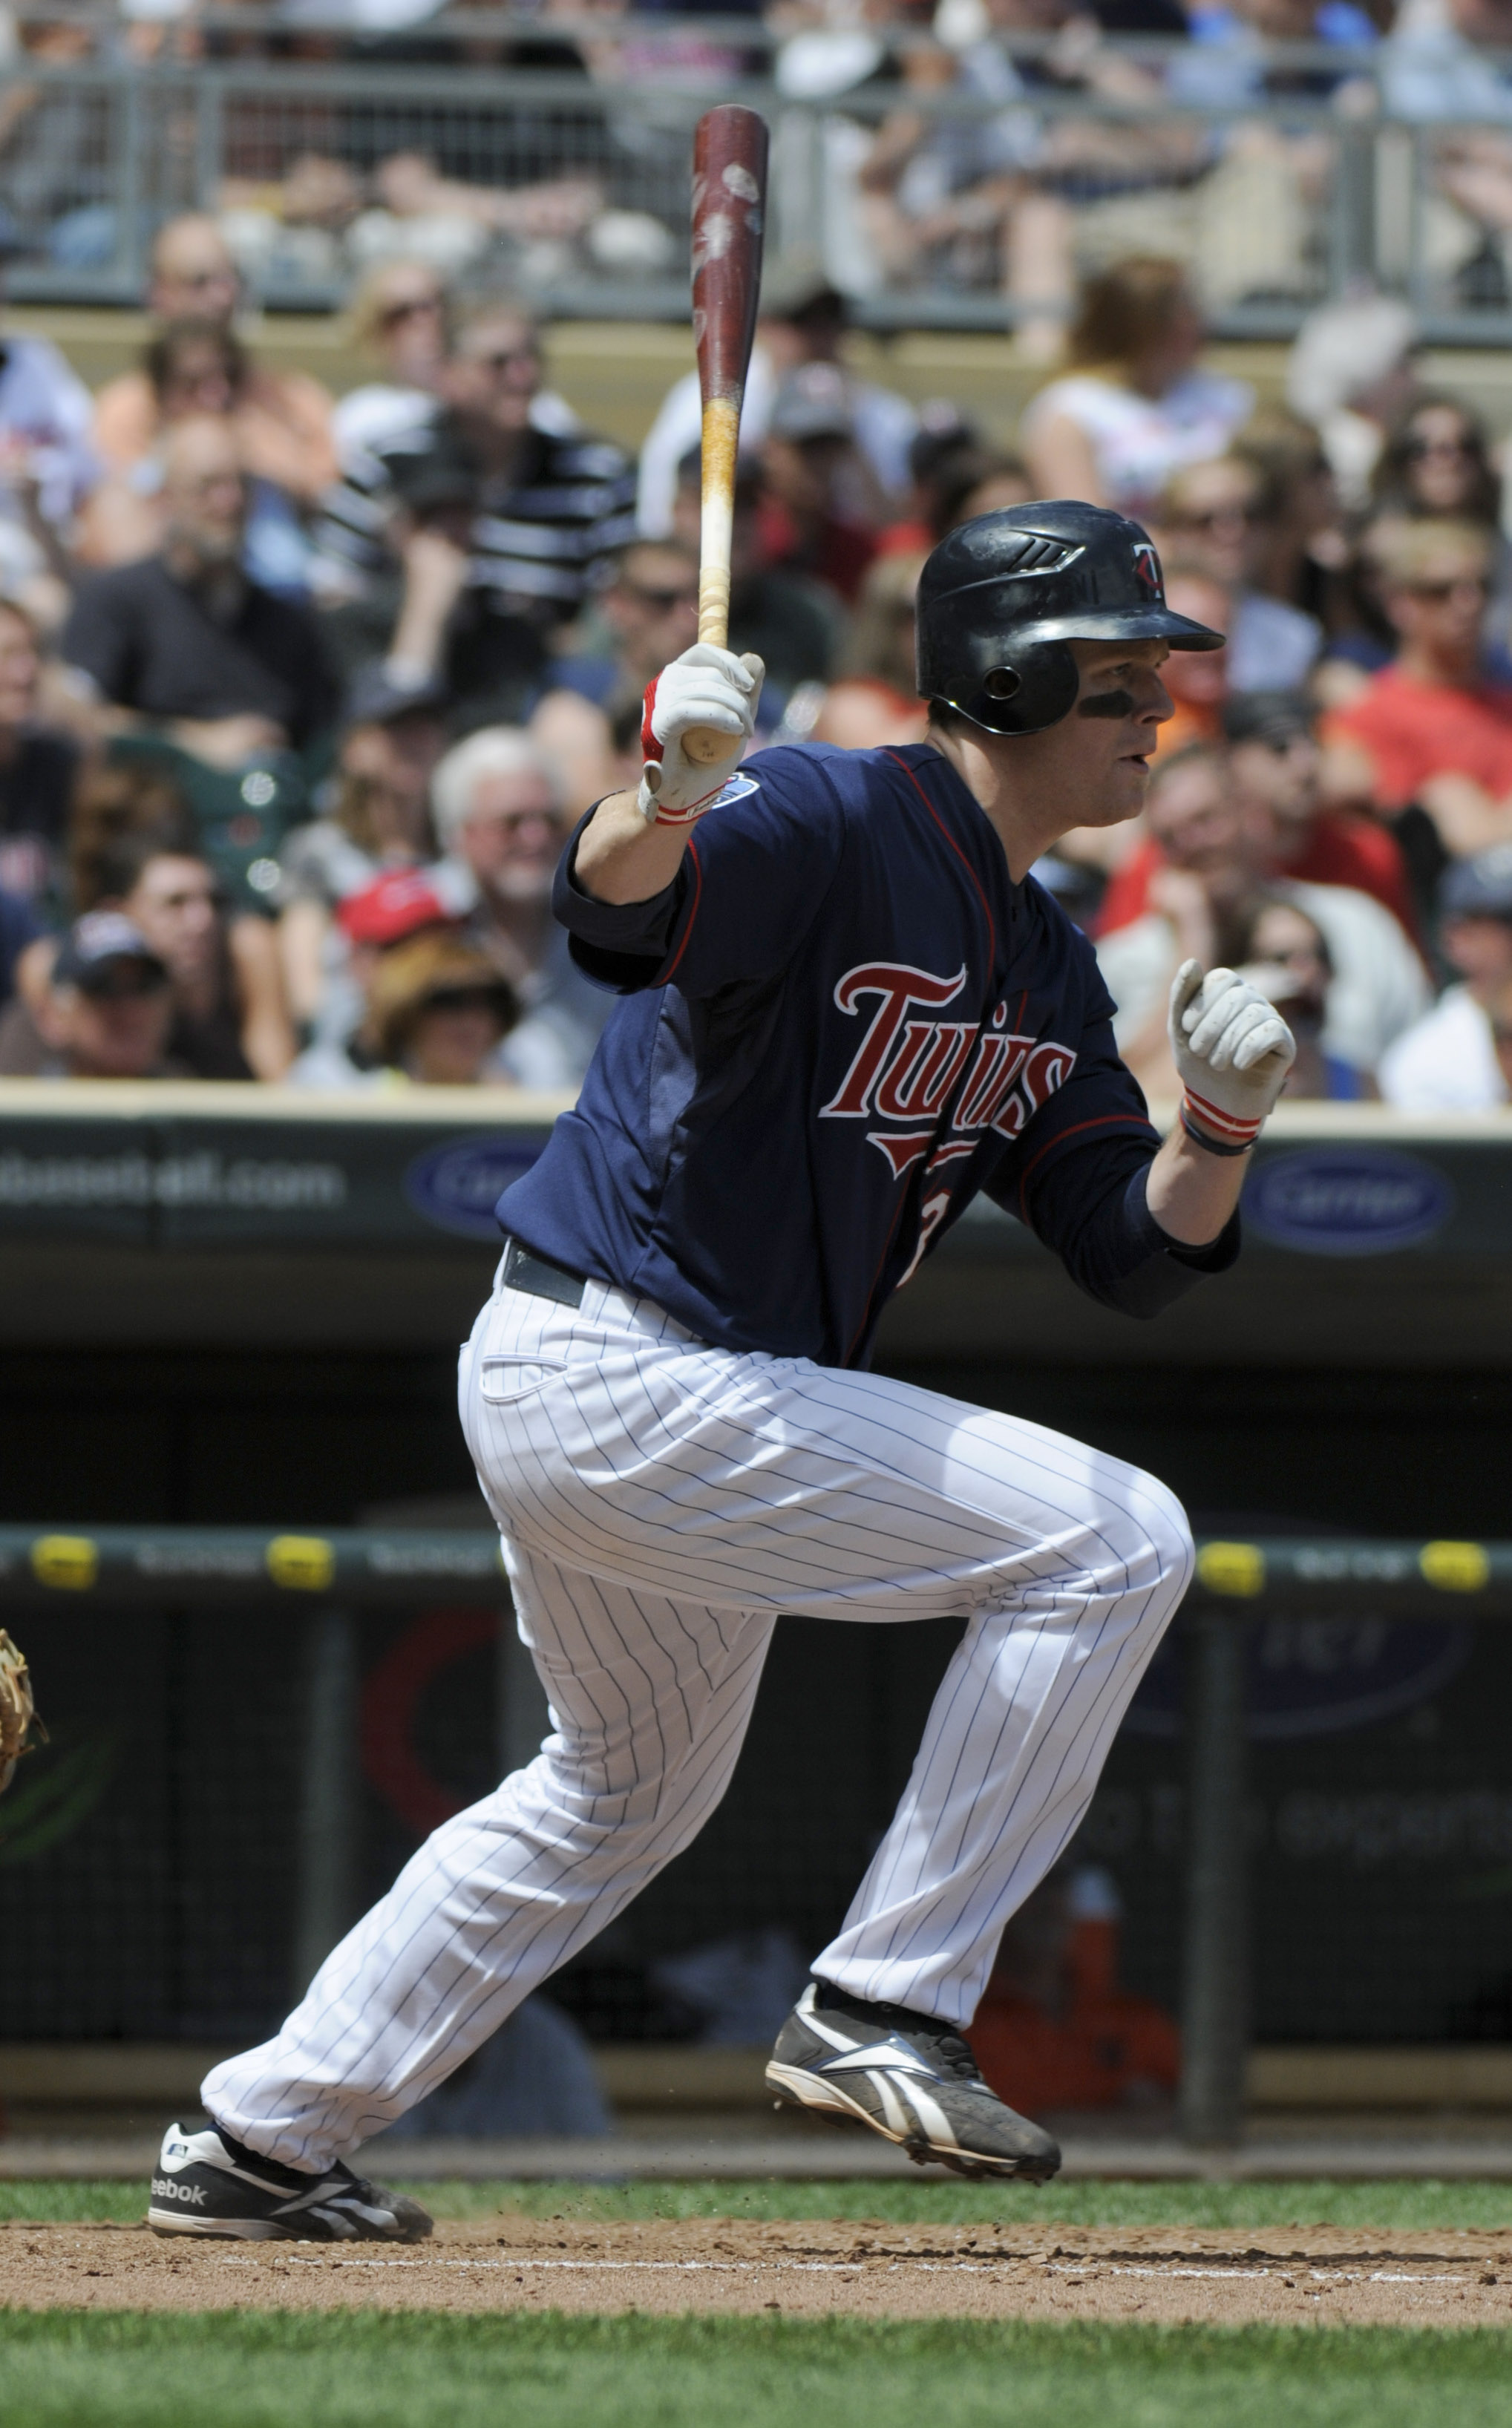 MINNEAPOLIS, MN - JUNE 30: Justin Morneau #33 of the Minnesota Twins bats in the eighth inning against the Detroit Tigers during their game on June 30, 2010 at Target Field in Minneapolis, Minnesota. Twins won 5-1. (Photo by Hannah Foslien /Getty Images)